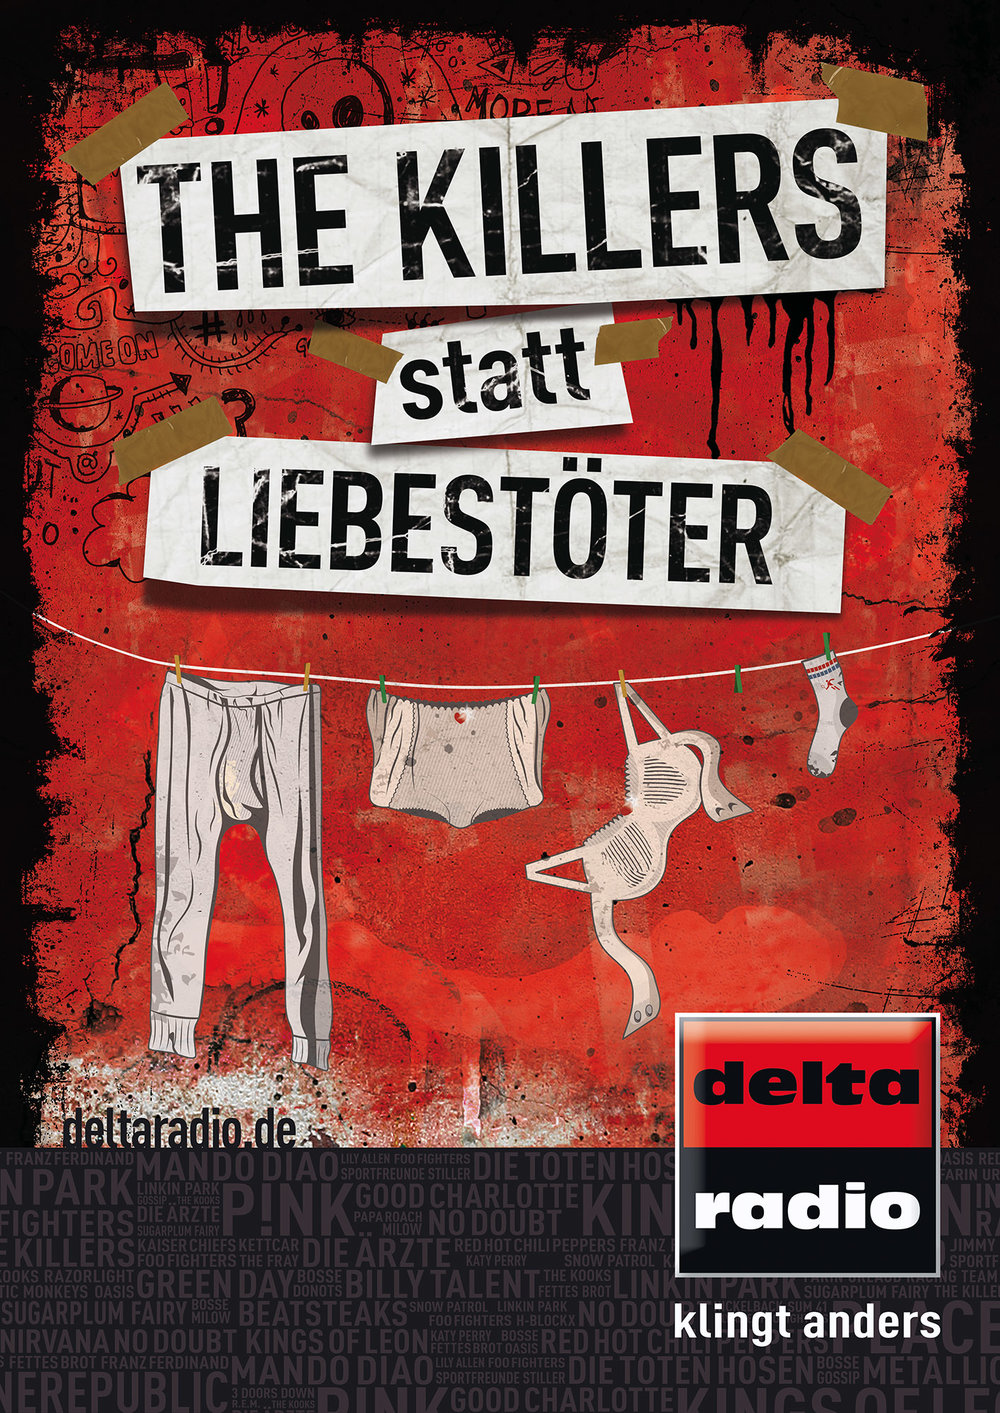 rbtq_Illustration_Seiser_Illustratorin_Hamburg_Editorial_DeltaRadio_theKillers.jpg